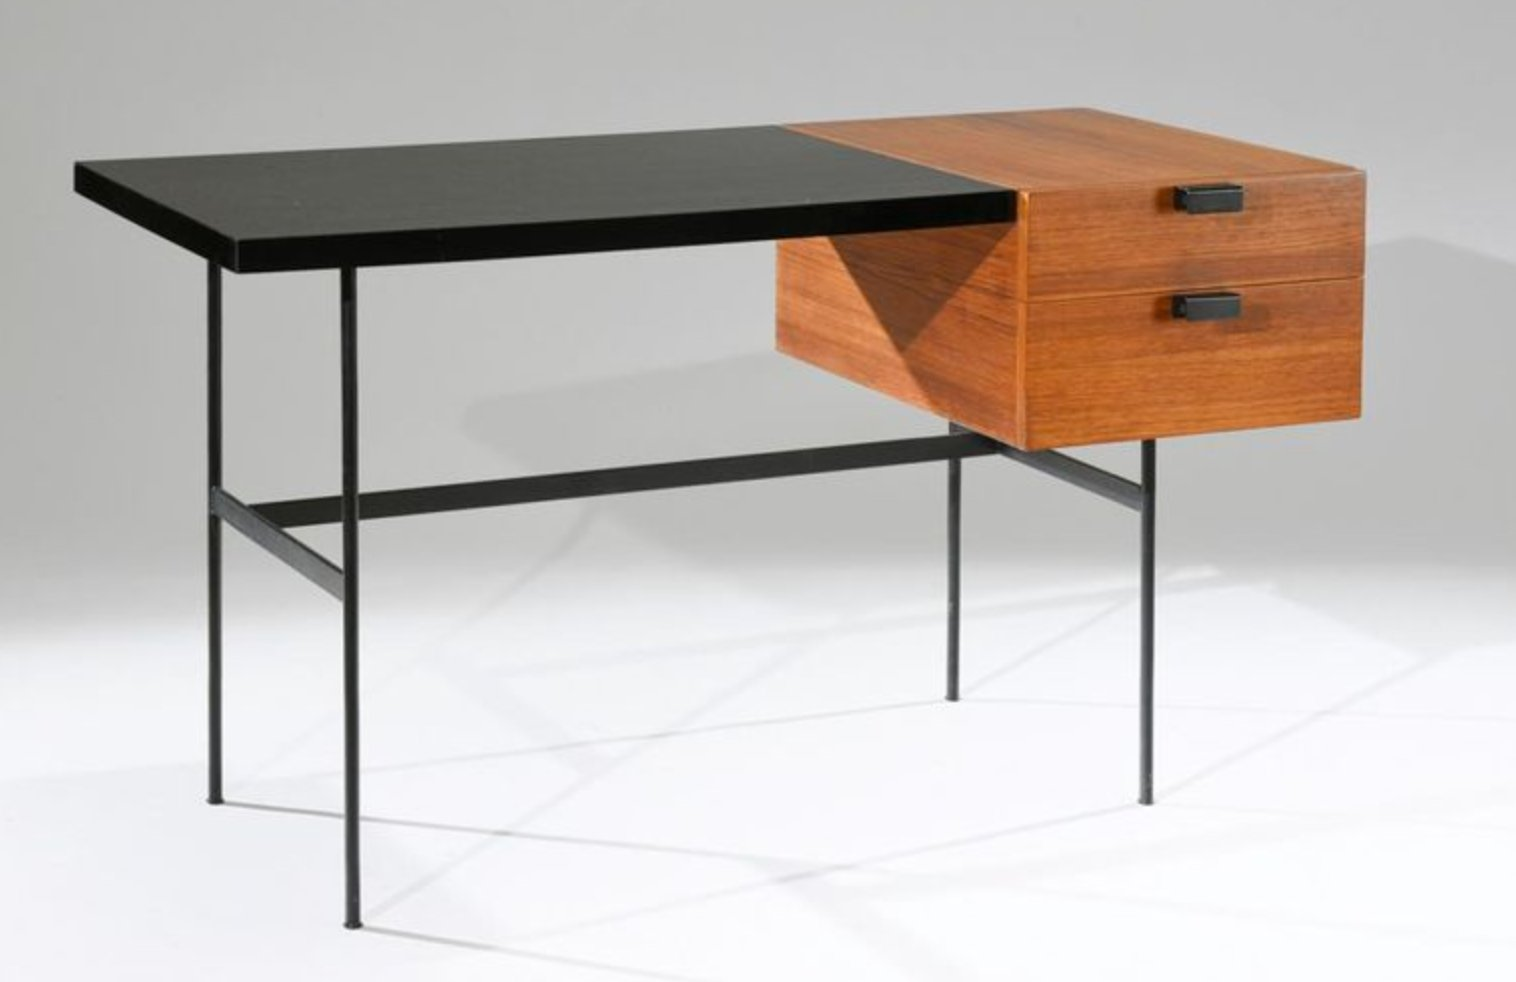 Mid Century Mahogany Model Cm141 Desk By Pierre Paulin For Thonet 1954 For Sale At Pamono